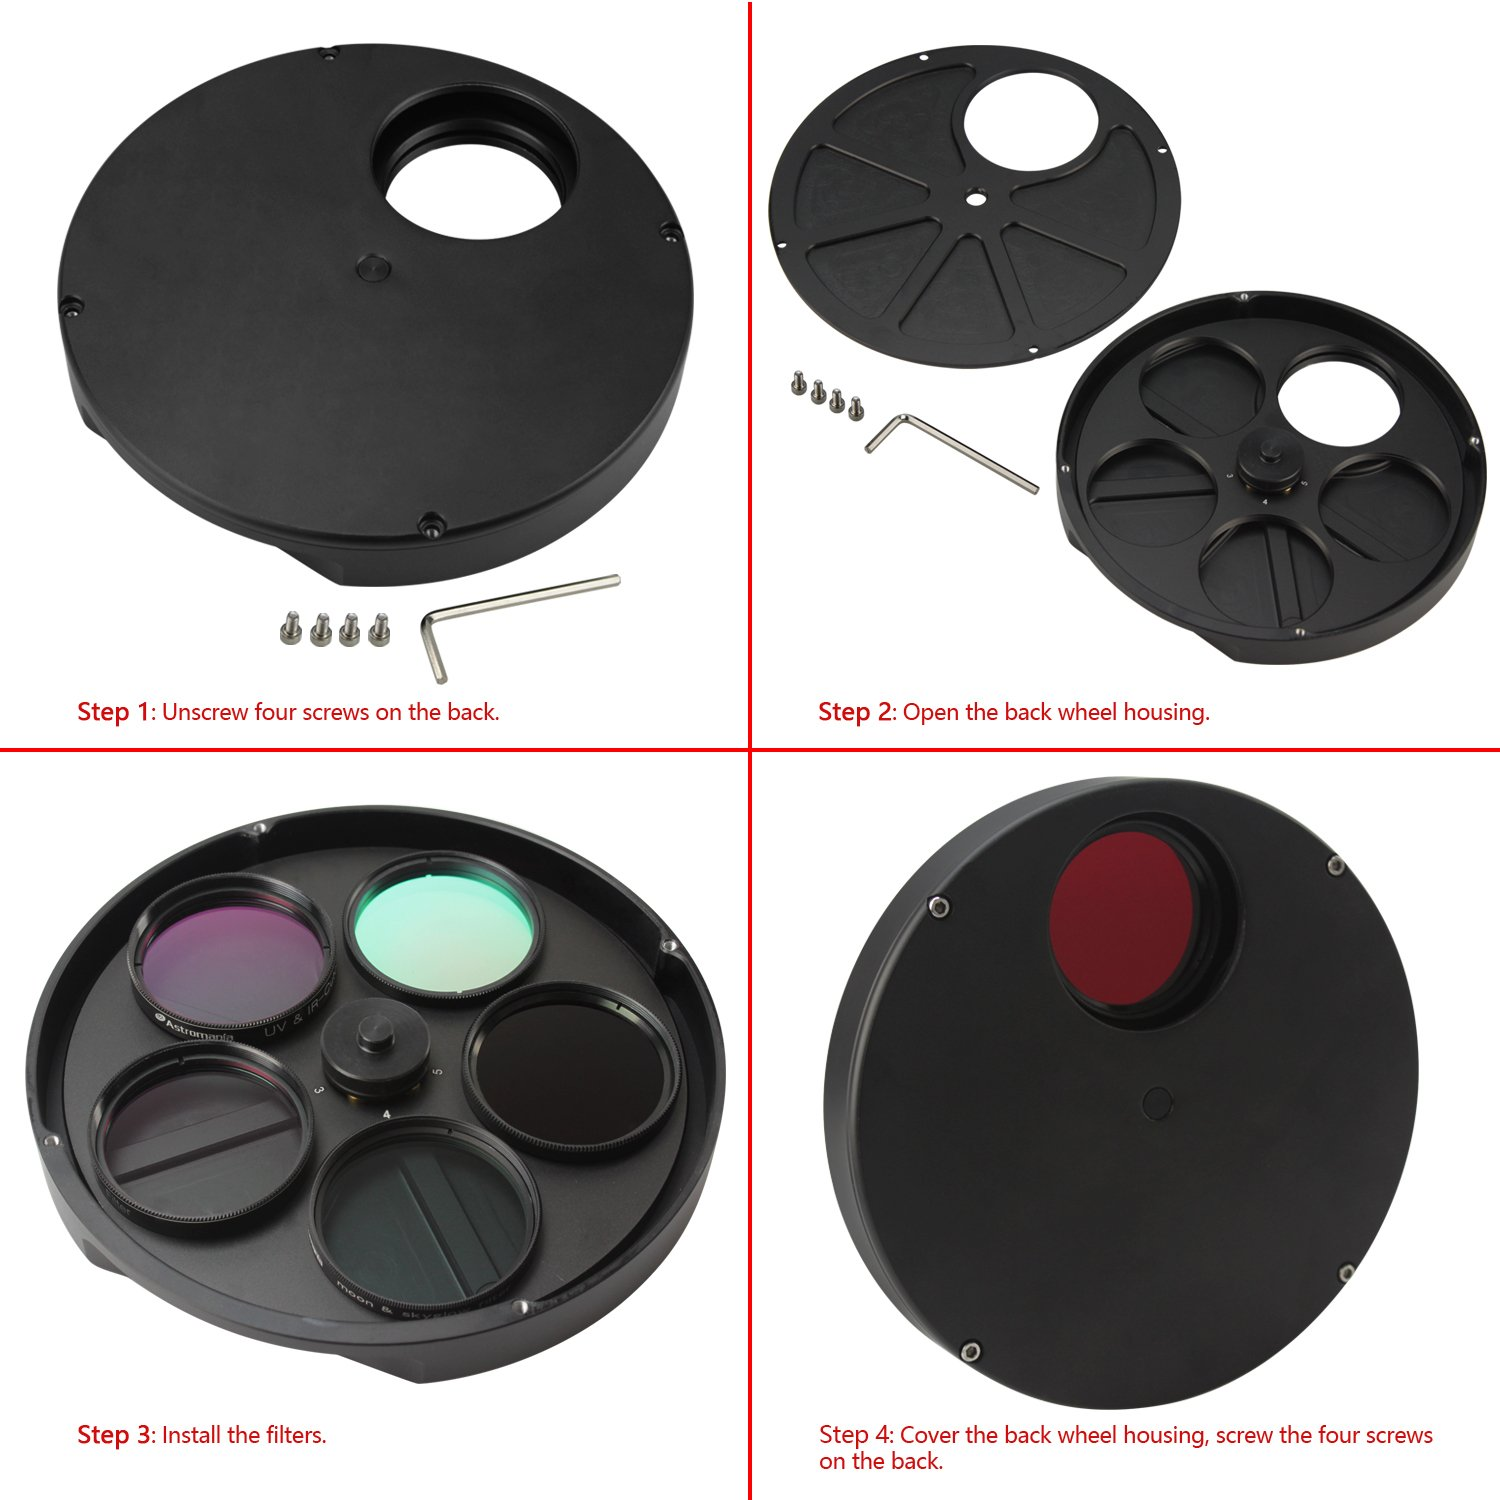 Astromania 2'' Superior Quality Multiple 5-Position Filter Wheel For Telescope - allowing you to image without any reflections or stray light by Astromania (Image #6)